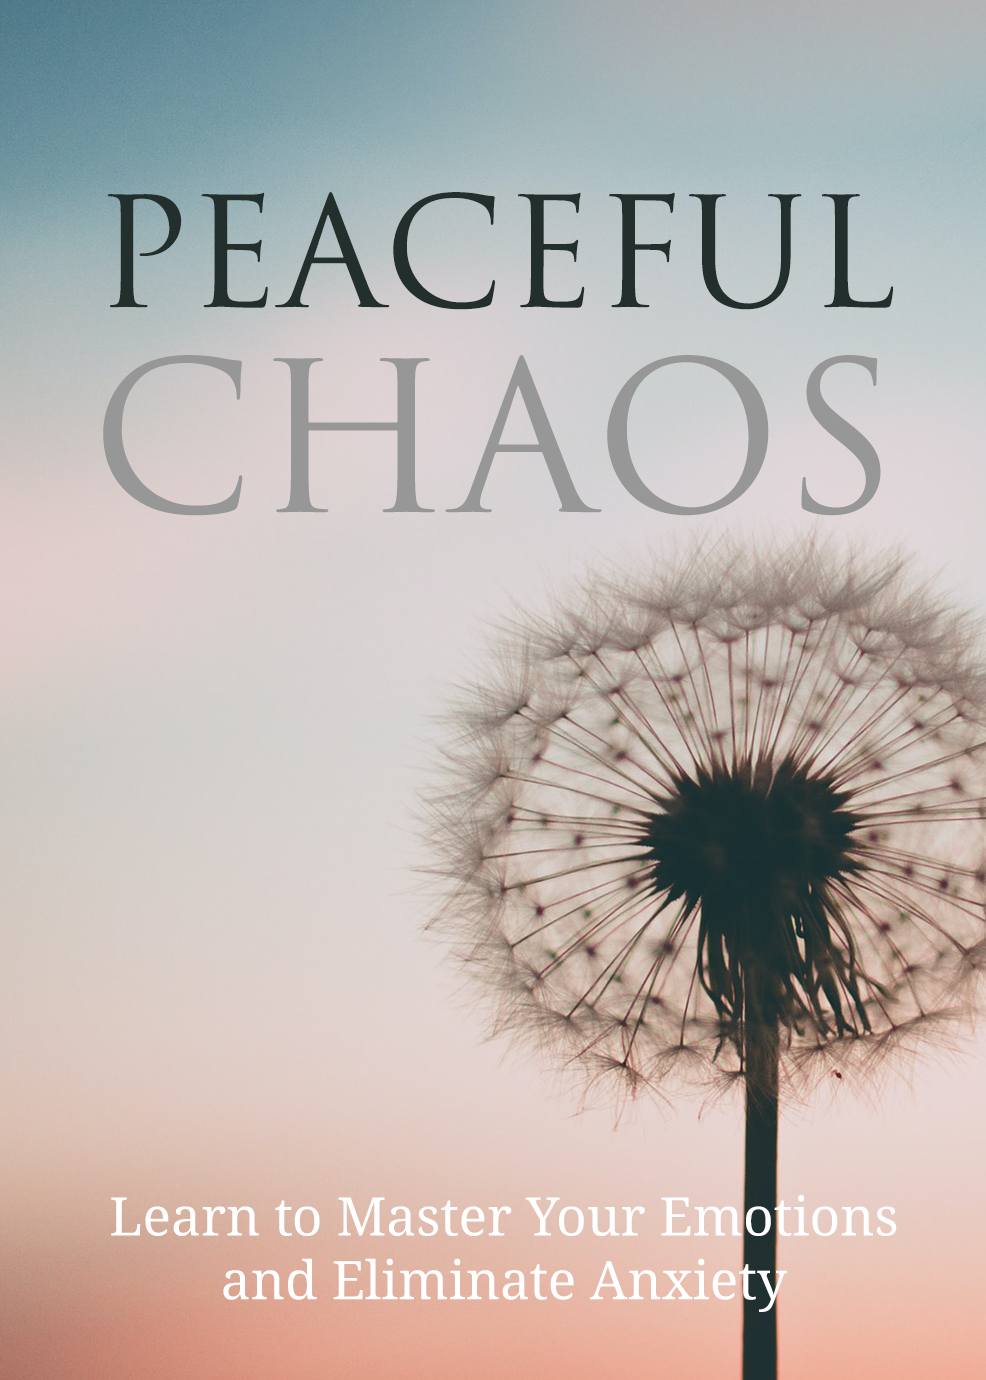 Peaceful Chaos (Learn To Master Your Emotions And Eliminate Anxiety) Ebook's Ebook Image